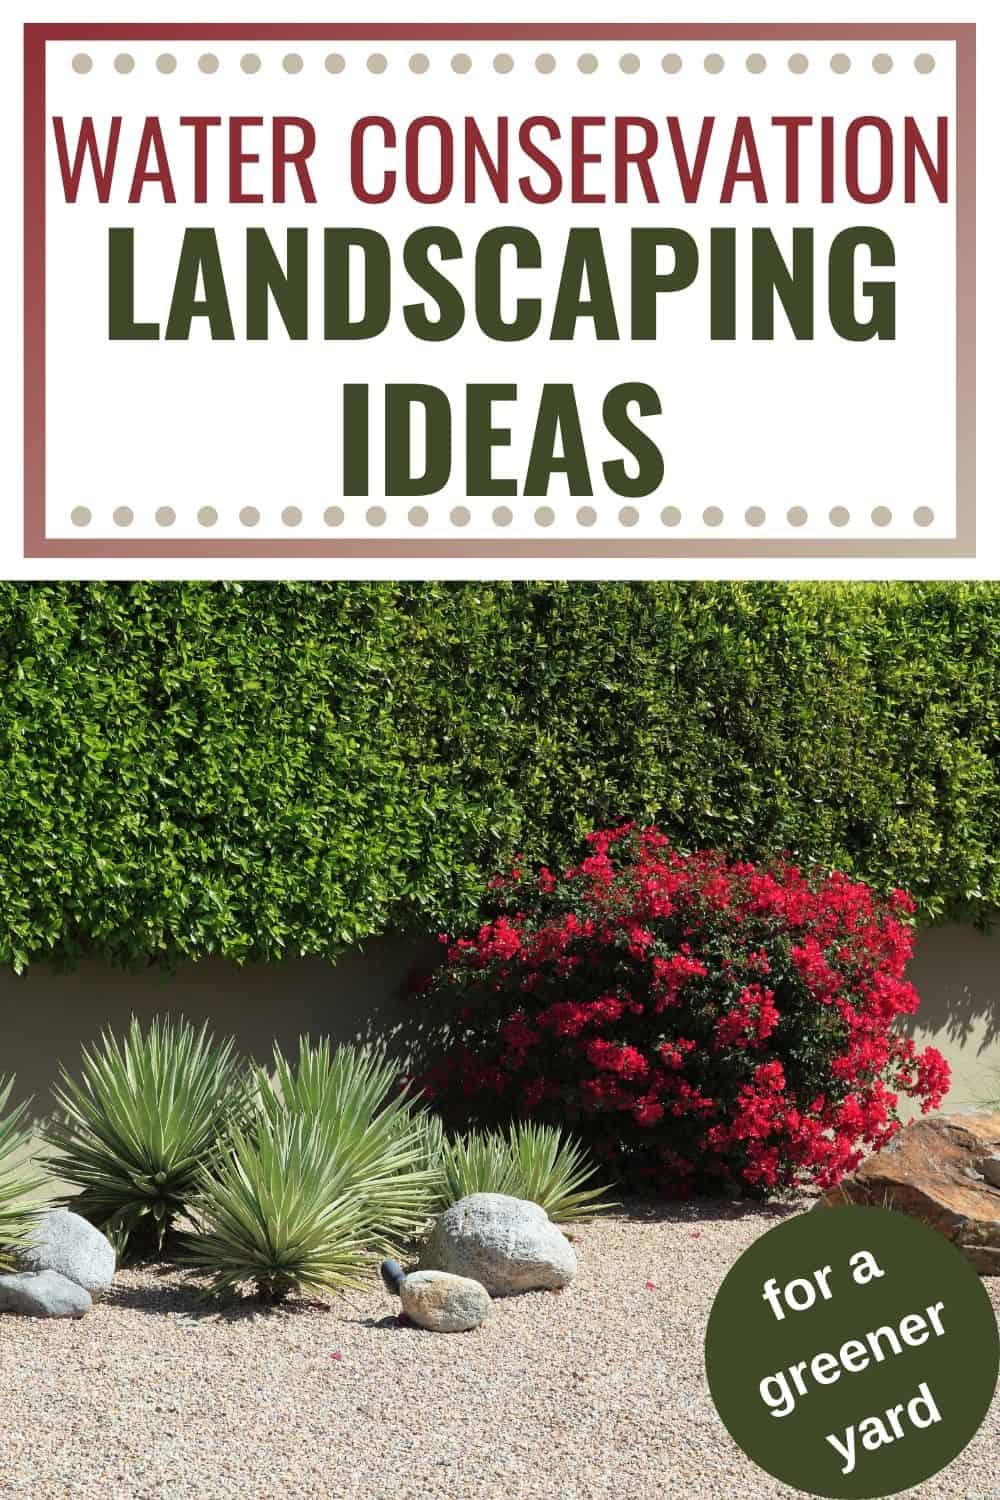 Water conservation landscaping ideas